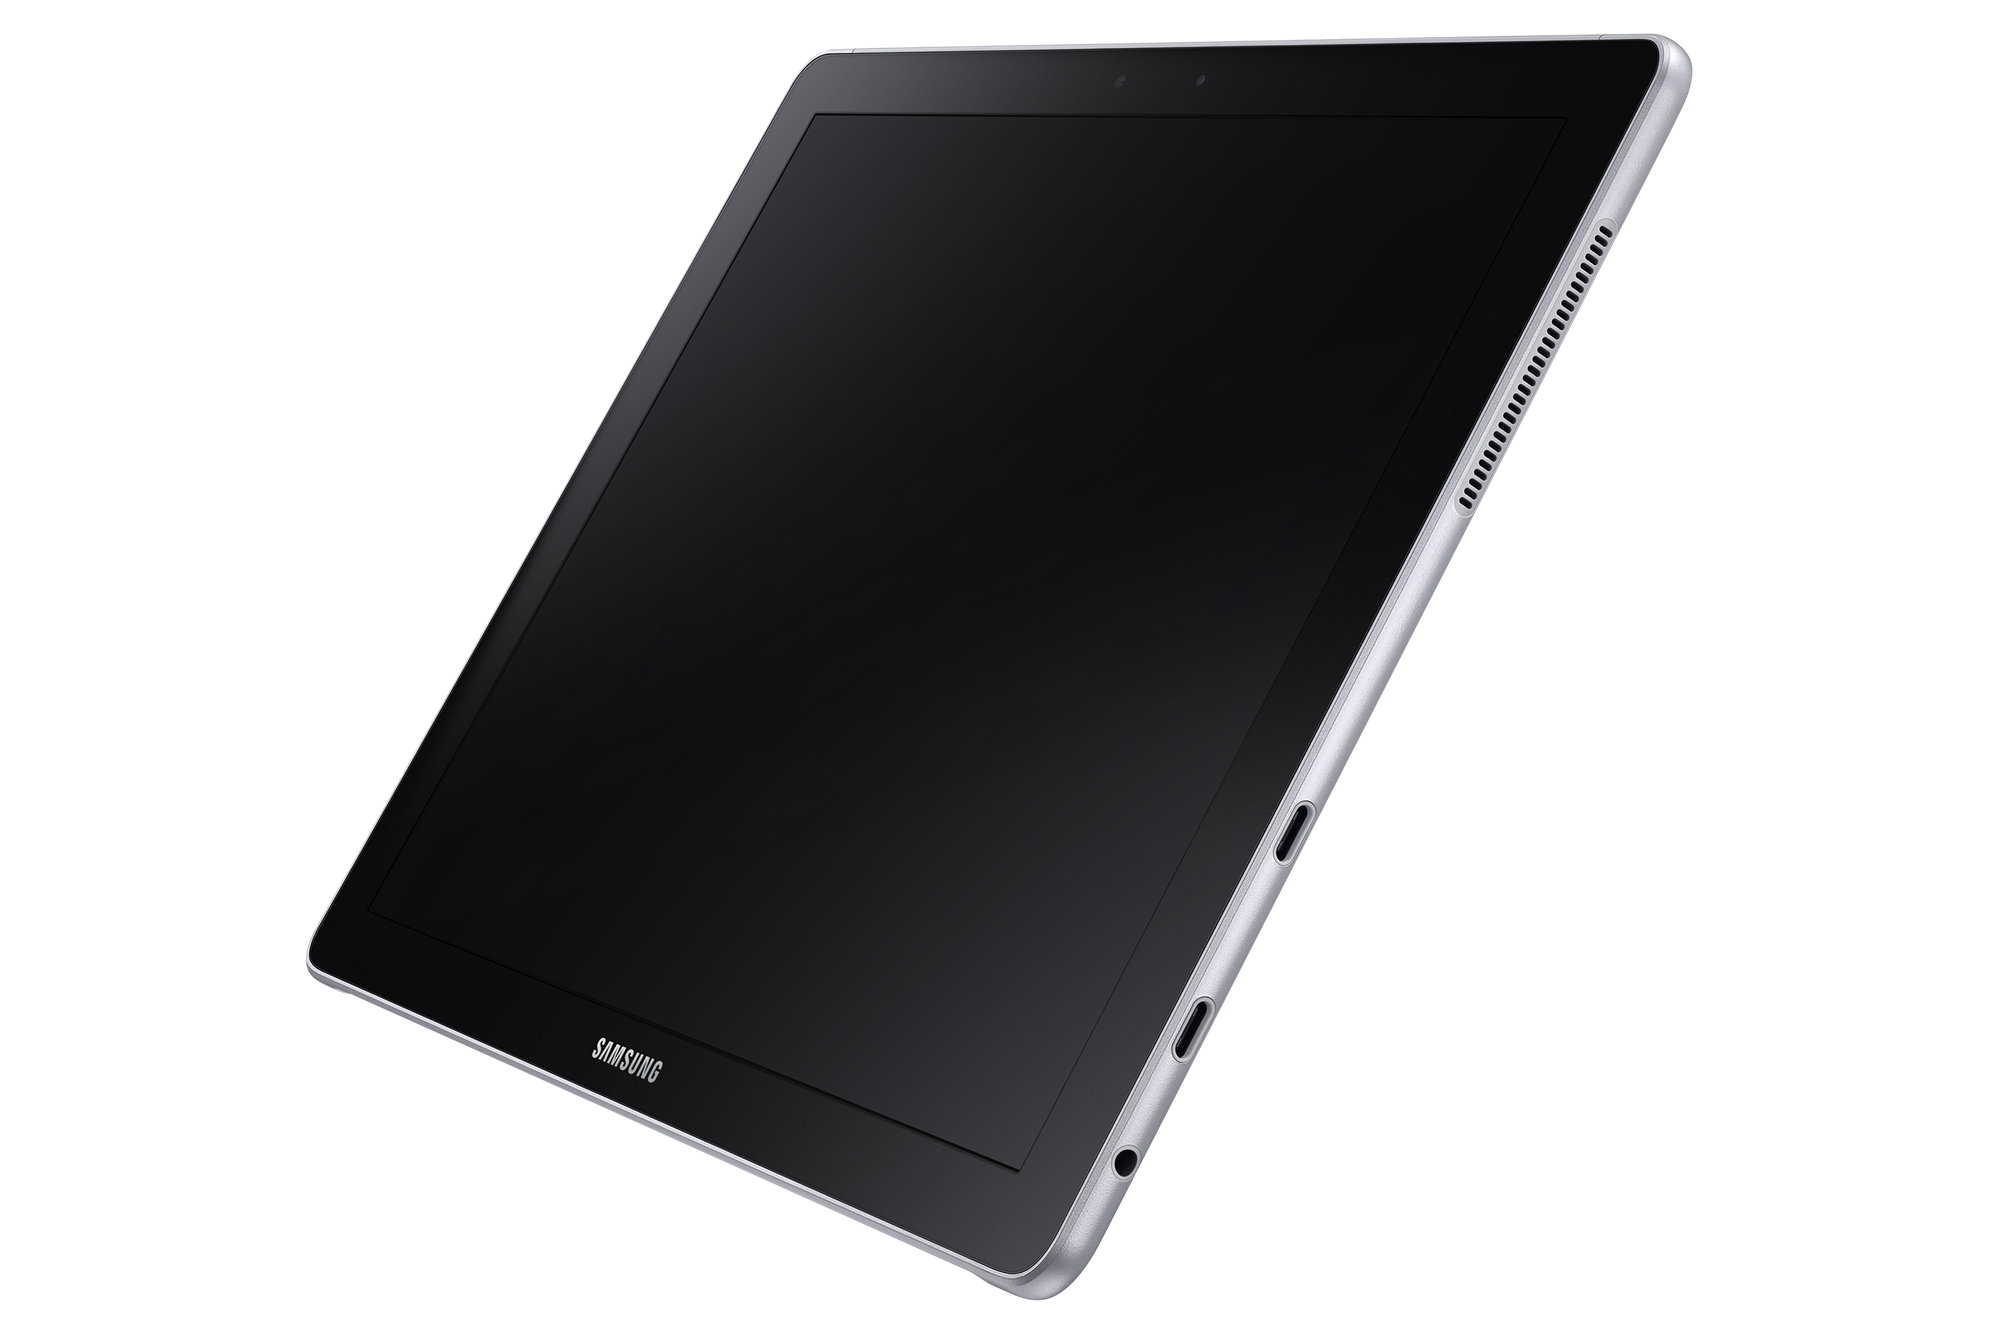 Samsung Galaxy Book Touchpad stops working after login and Windows 10 1809 update Samsung.png